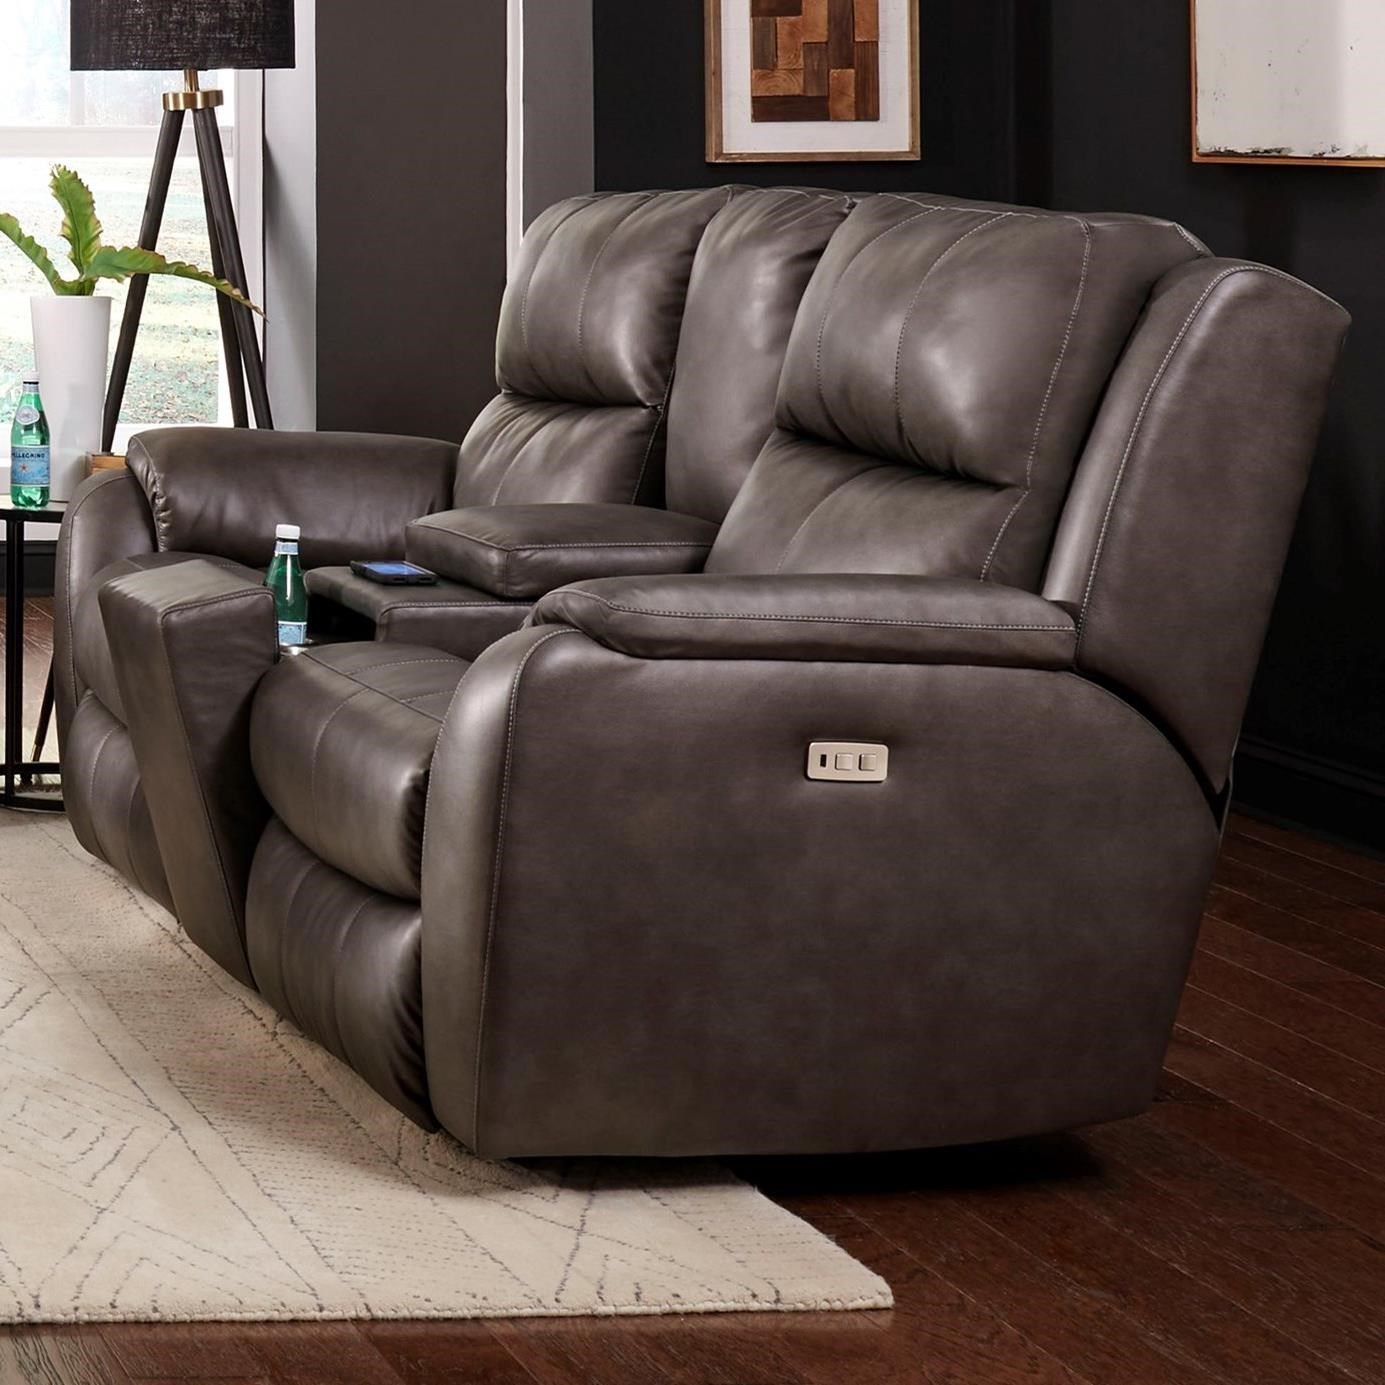 Marquis Pwr Headrest Loveseat w/ Console by Southern Motion at Furniture Barn